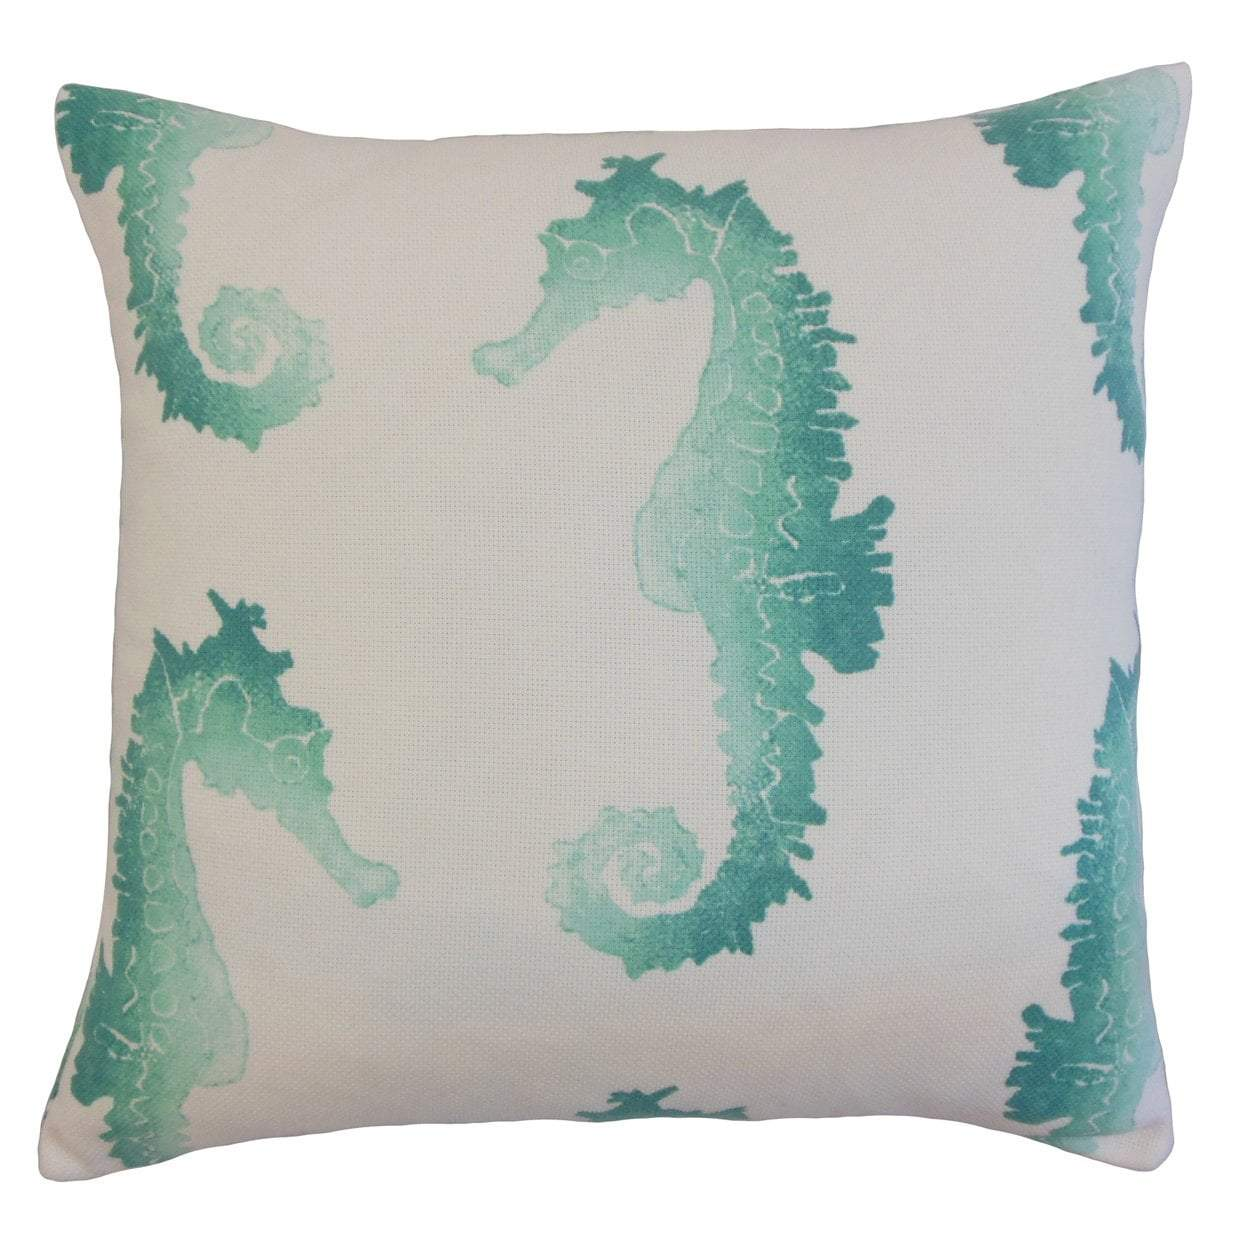 Blue Synthetic Graphic Coastal Throw Pillow Cover